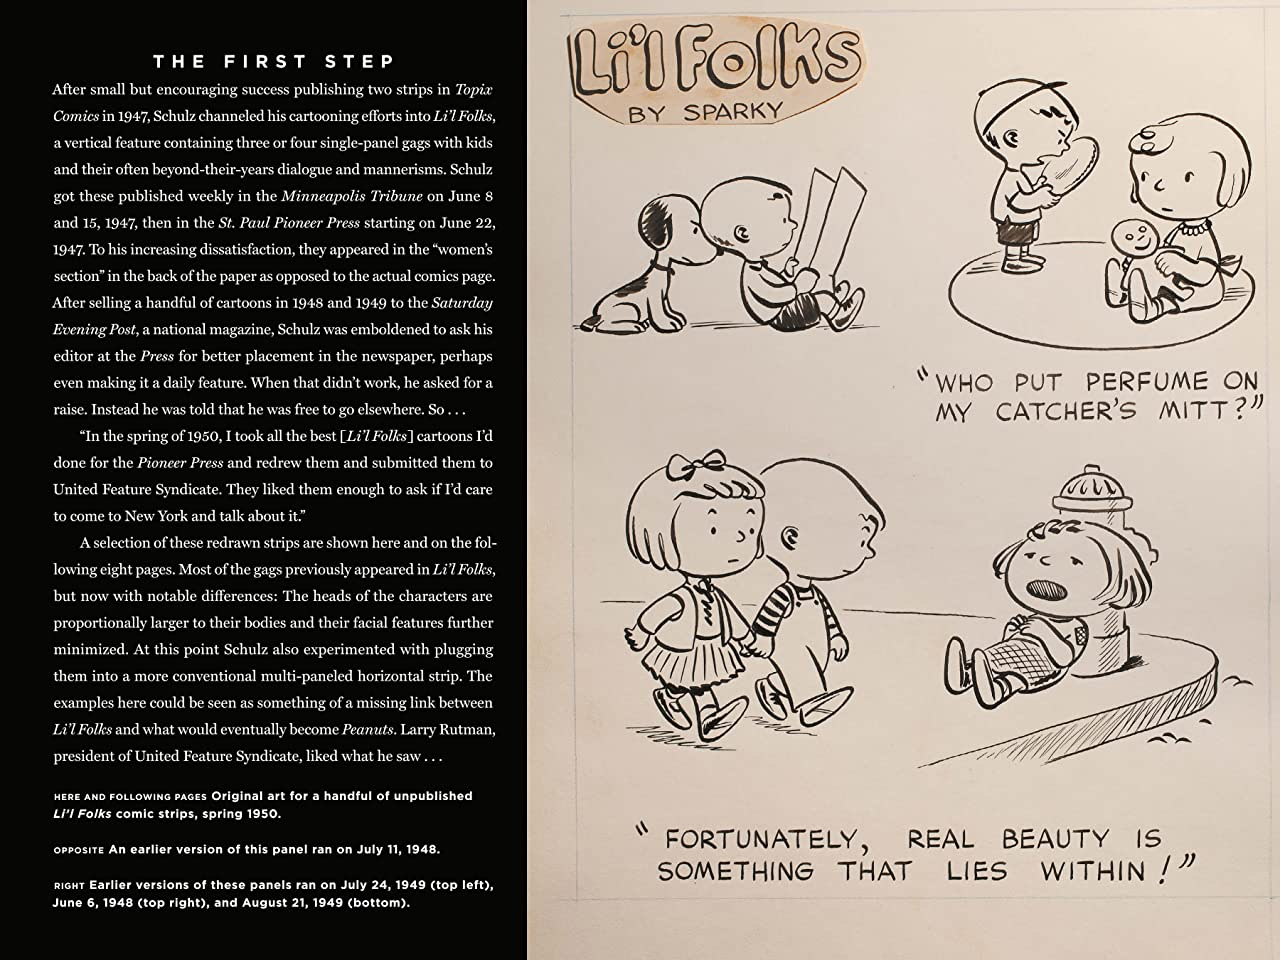 Only What's Necessary: Charles M. Schulz and the Art of Peanuts